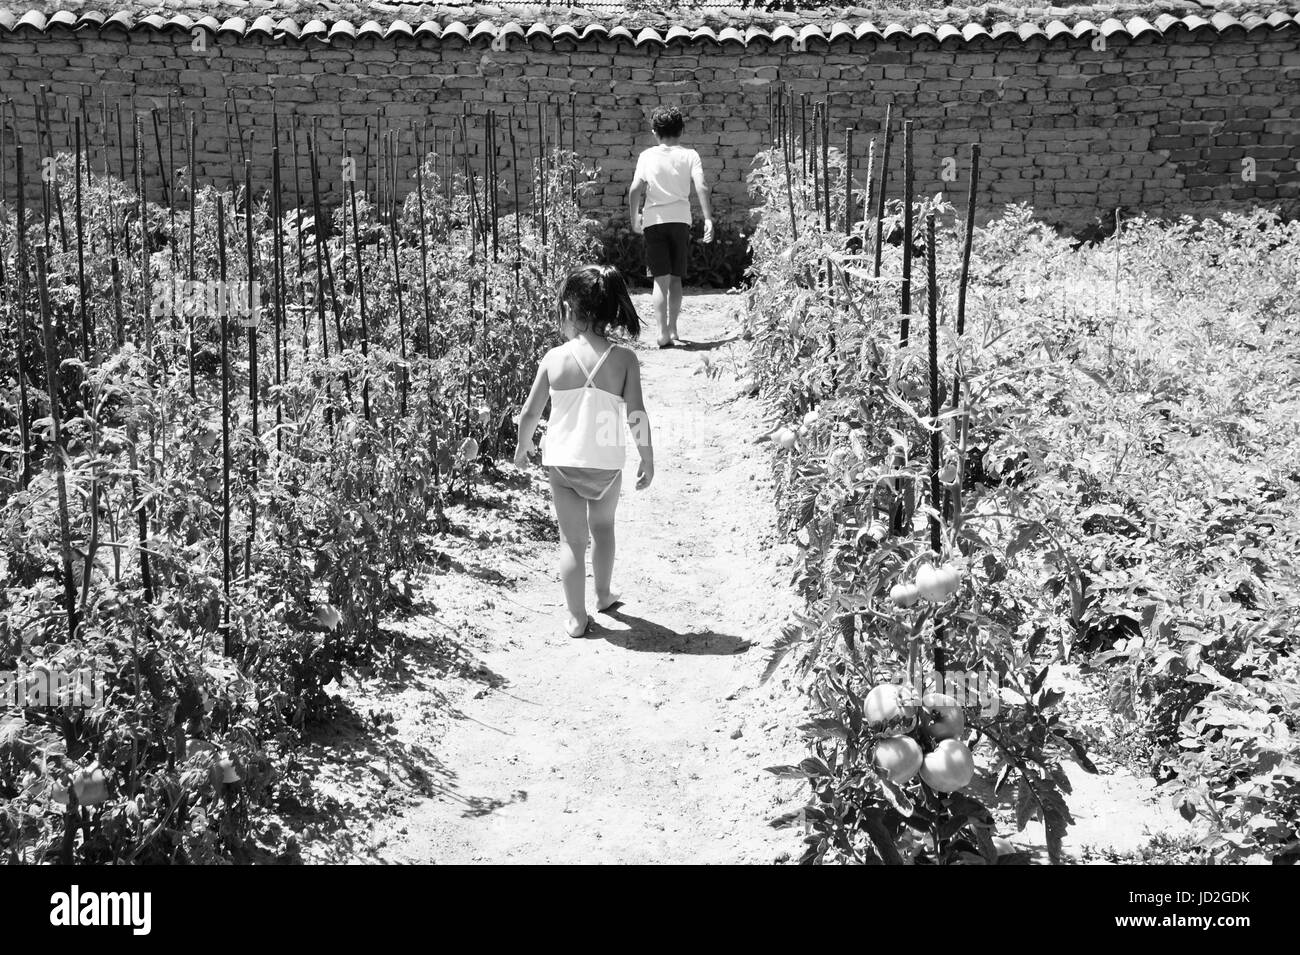 A little girl and a boy walking on a garden path checking out for ripe tomatoes. - Stock Image